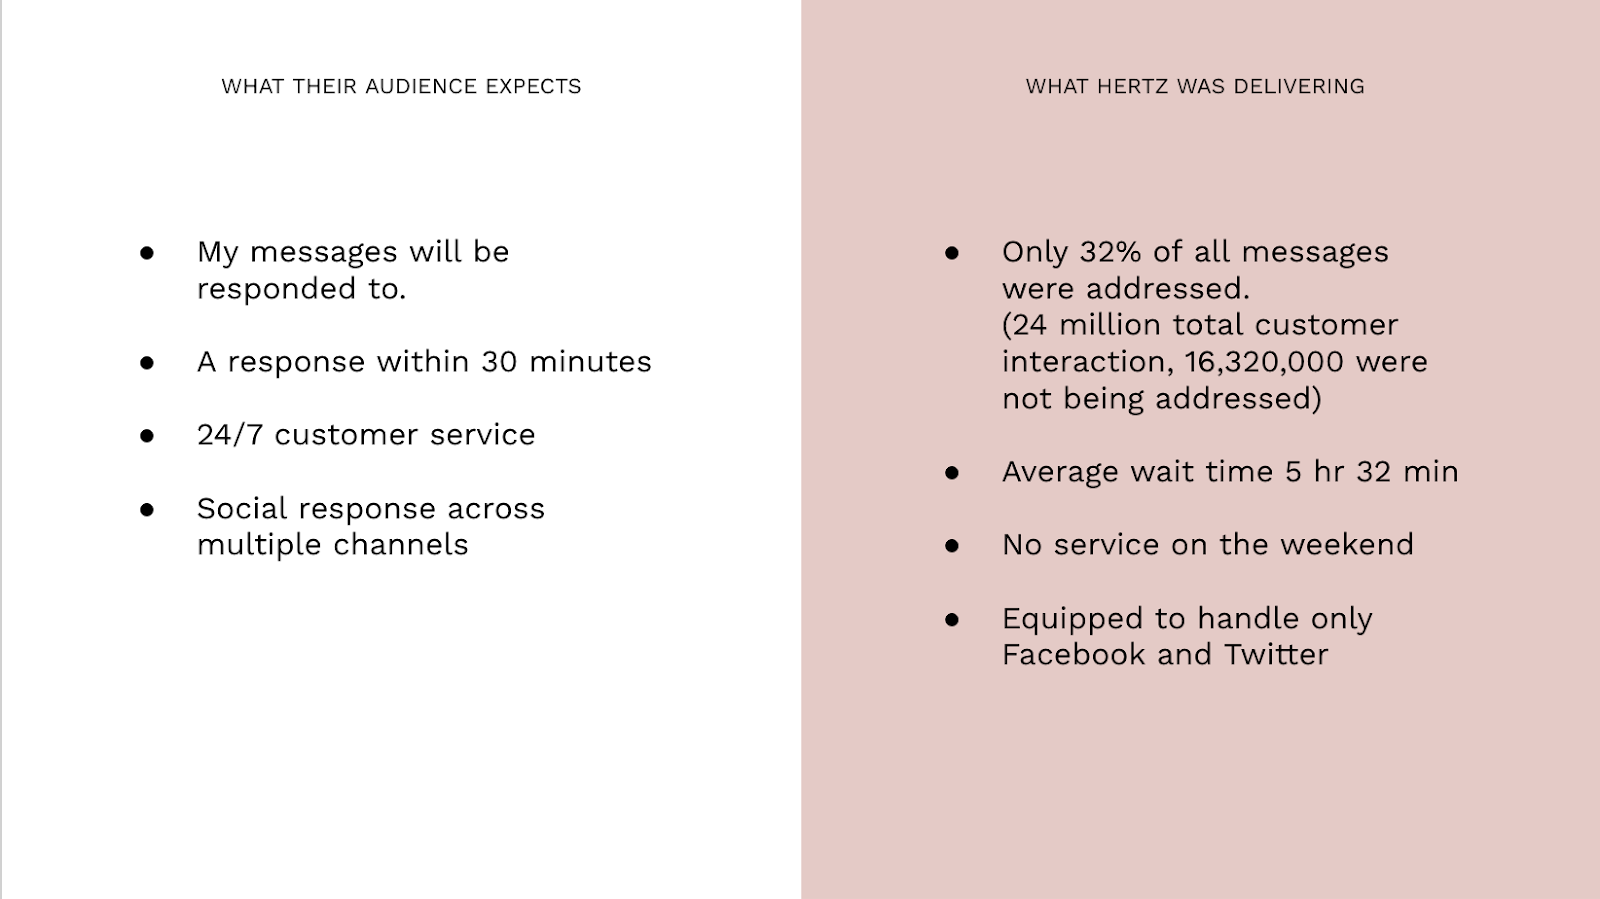 This image is split into two equal sections. One is white and the other is pink. The left one is titled what their audience expects. Beneath that is a bulleted list of four points: My message will be responded to, a response within 3o minutes, 24/7 customer service, and social response across multiple channels. The second section in pink is titled What Hertz was delivering with four bullet points below which read: only 32% of all messages were addressed (24 million total customer interaction, 16,320,000 were not being addressed), average wait time 5 hr 32 min, no service on the weekend, and equipped to handle only Facebook and Twitter.